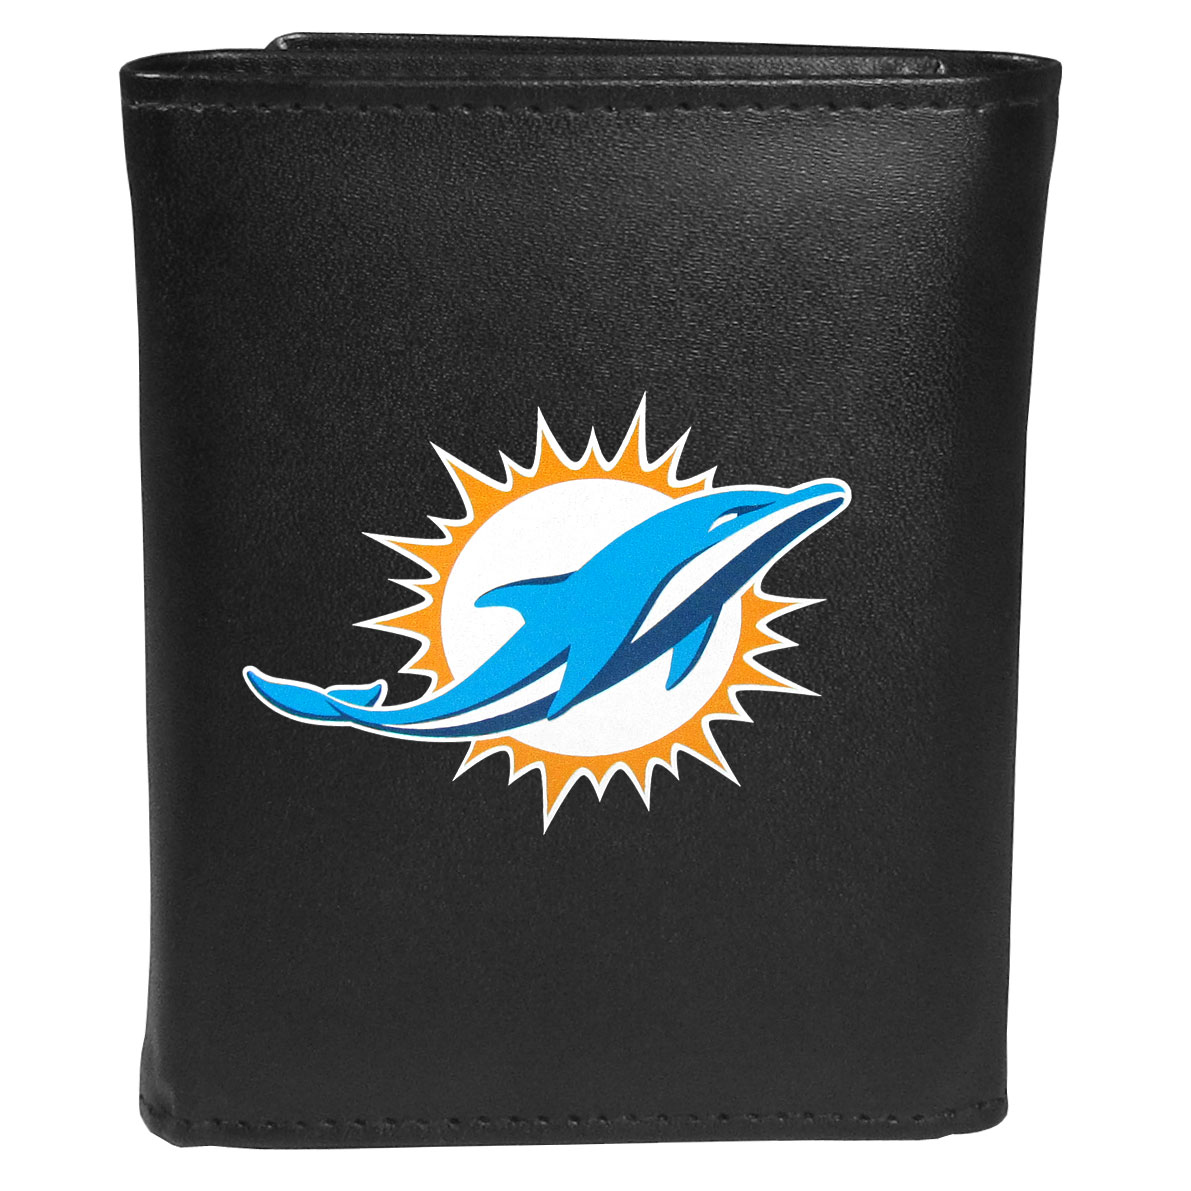 Miami Dolphins Tri-fold Wallet Large Logo - Sports fans do not have to sacrifice style with this classic tri-fold wallet that sports theMiami Dolphins?extra large logo. This men's fashion accessory has a leather grain look and expert craftmanship for a quality wallet at a great price. The wallet features inner credit card slots, windowed ID slot and a large billfold pocket. The front of the wallet features an extra large printed team logo.